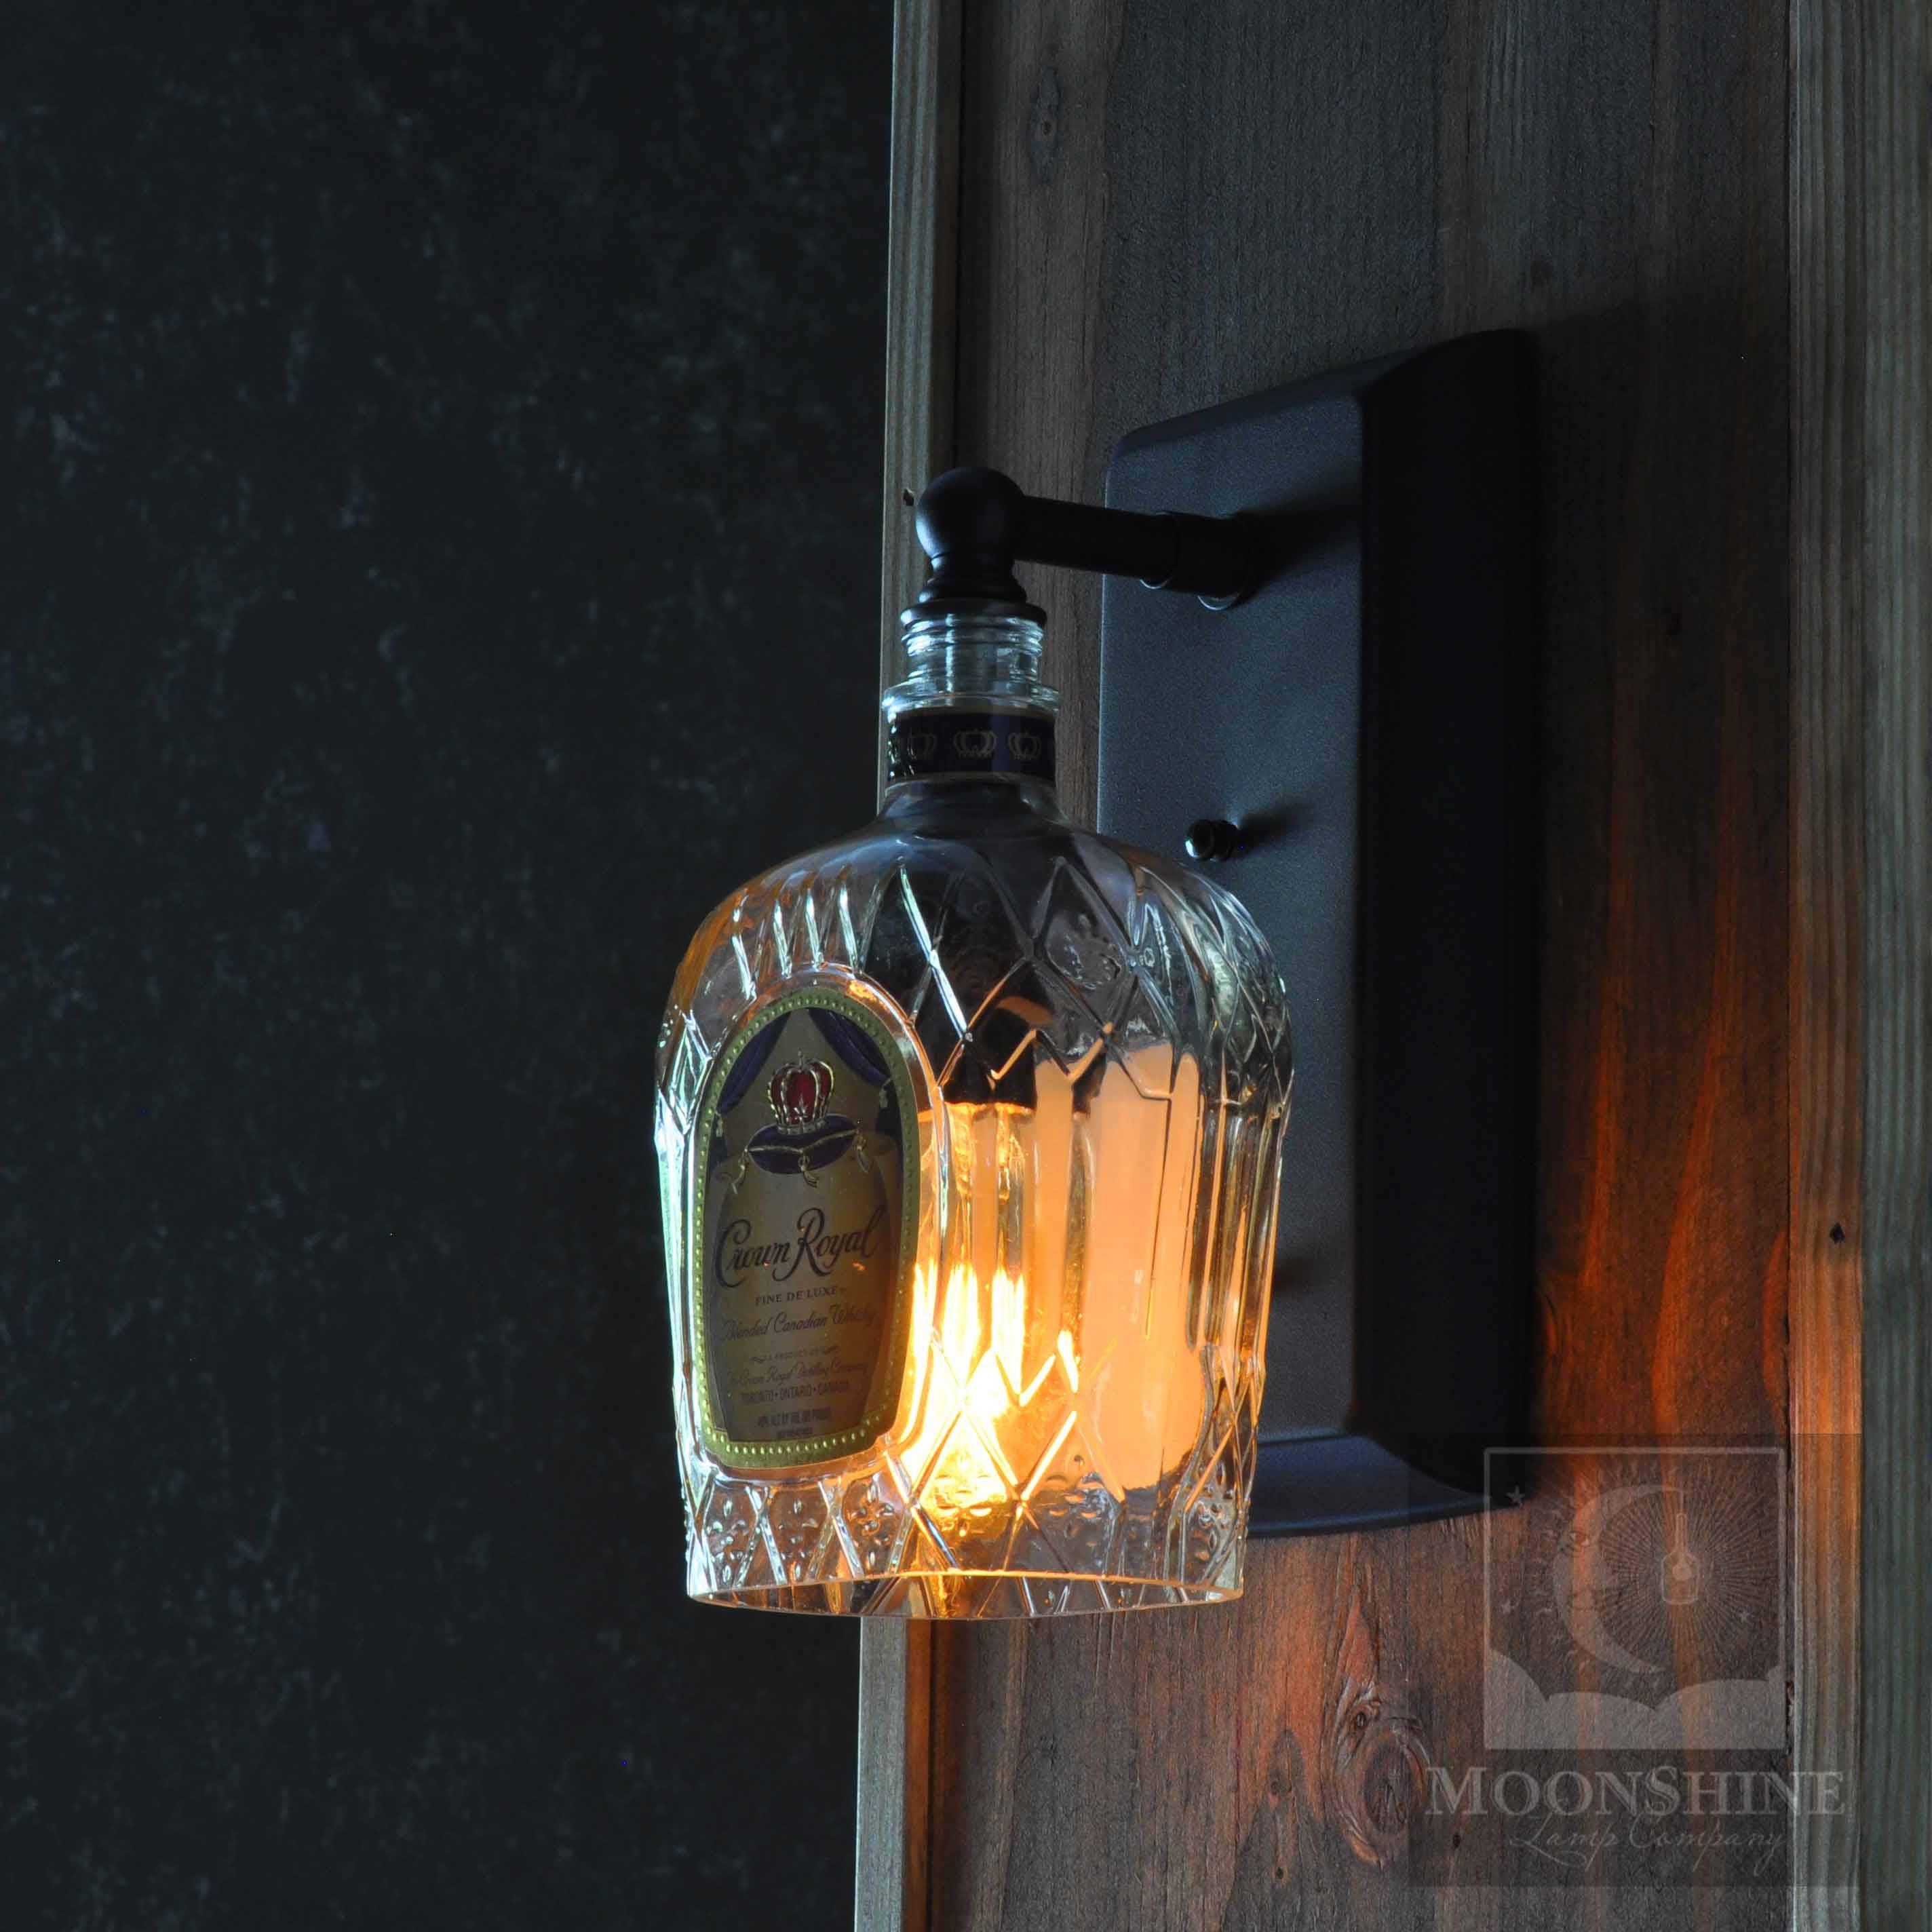 Skyrim Wall Sconces Not Working: Crown Royal Whiskey Bottle Wall Sconce With Vintage Style